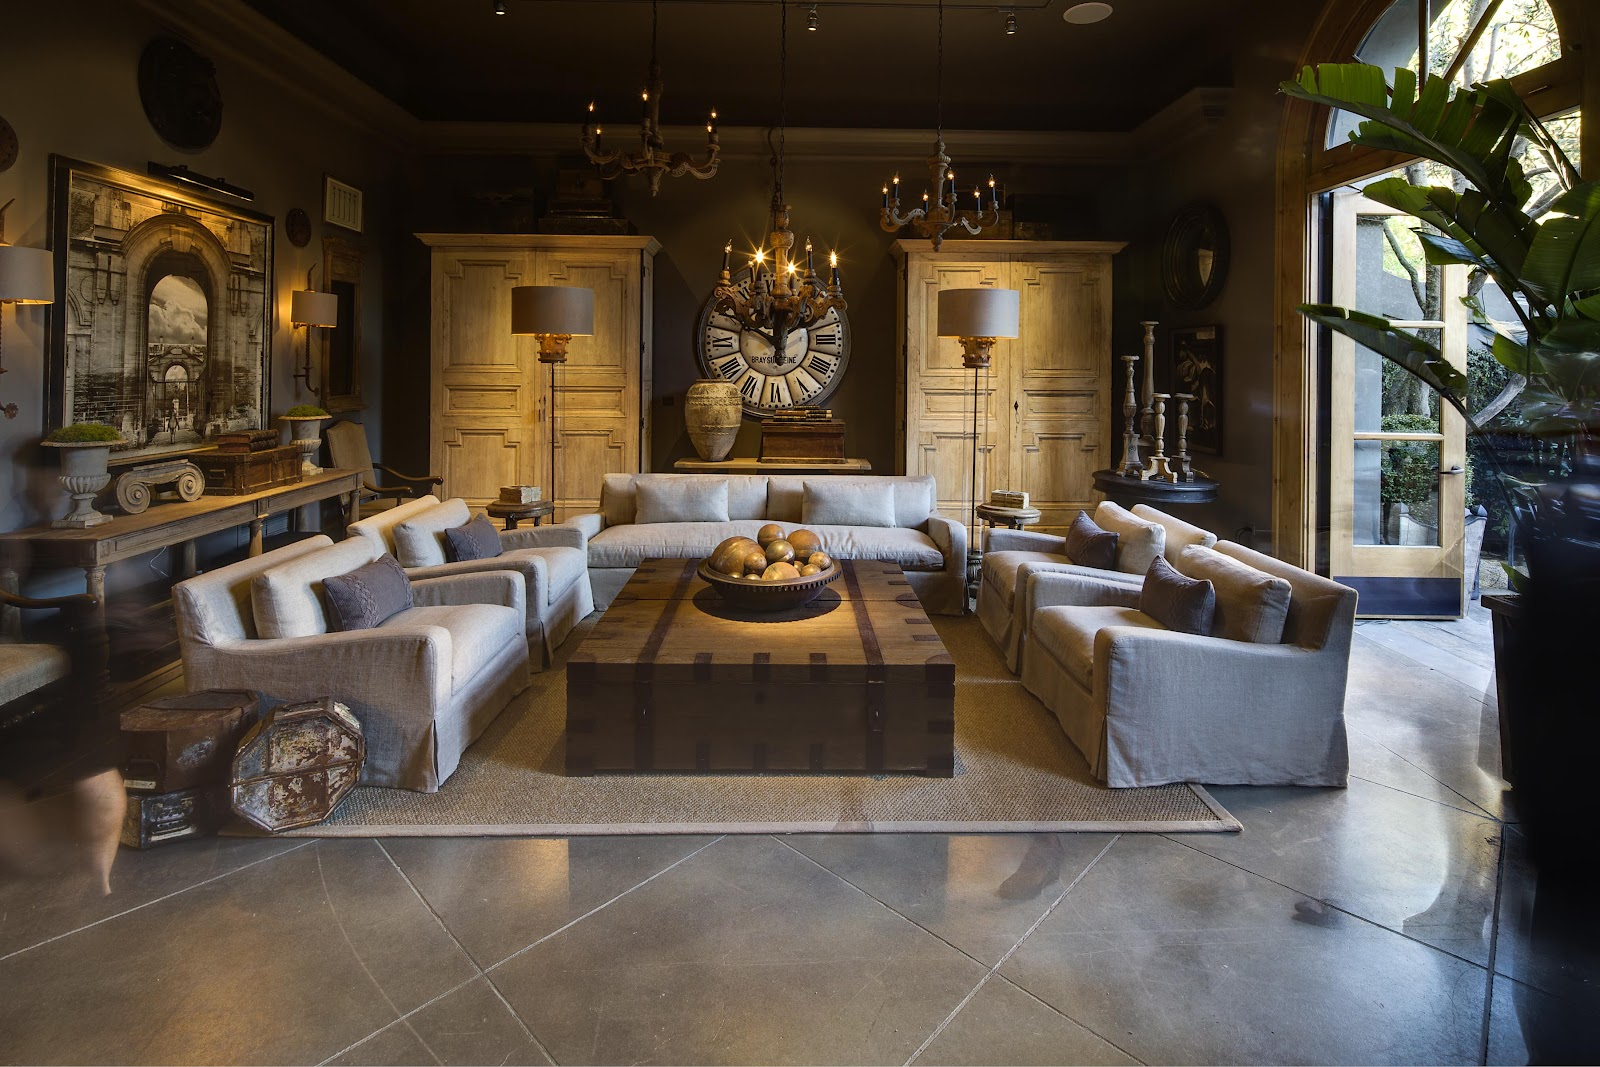 The Polished Pebble Restoration Hardware Ceo Gary Freidman S House In San Francisco